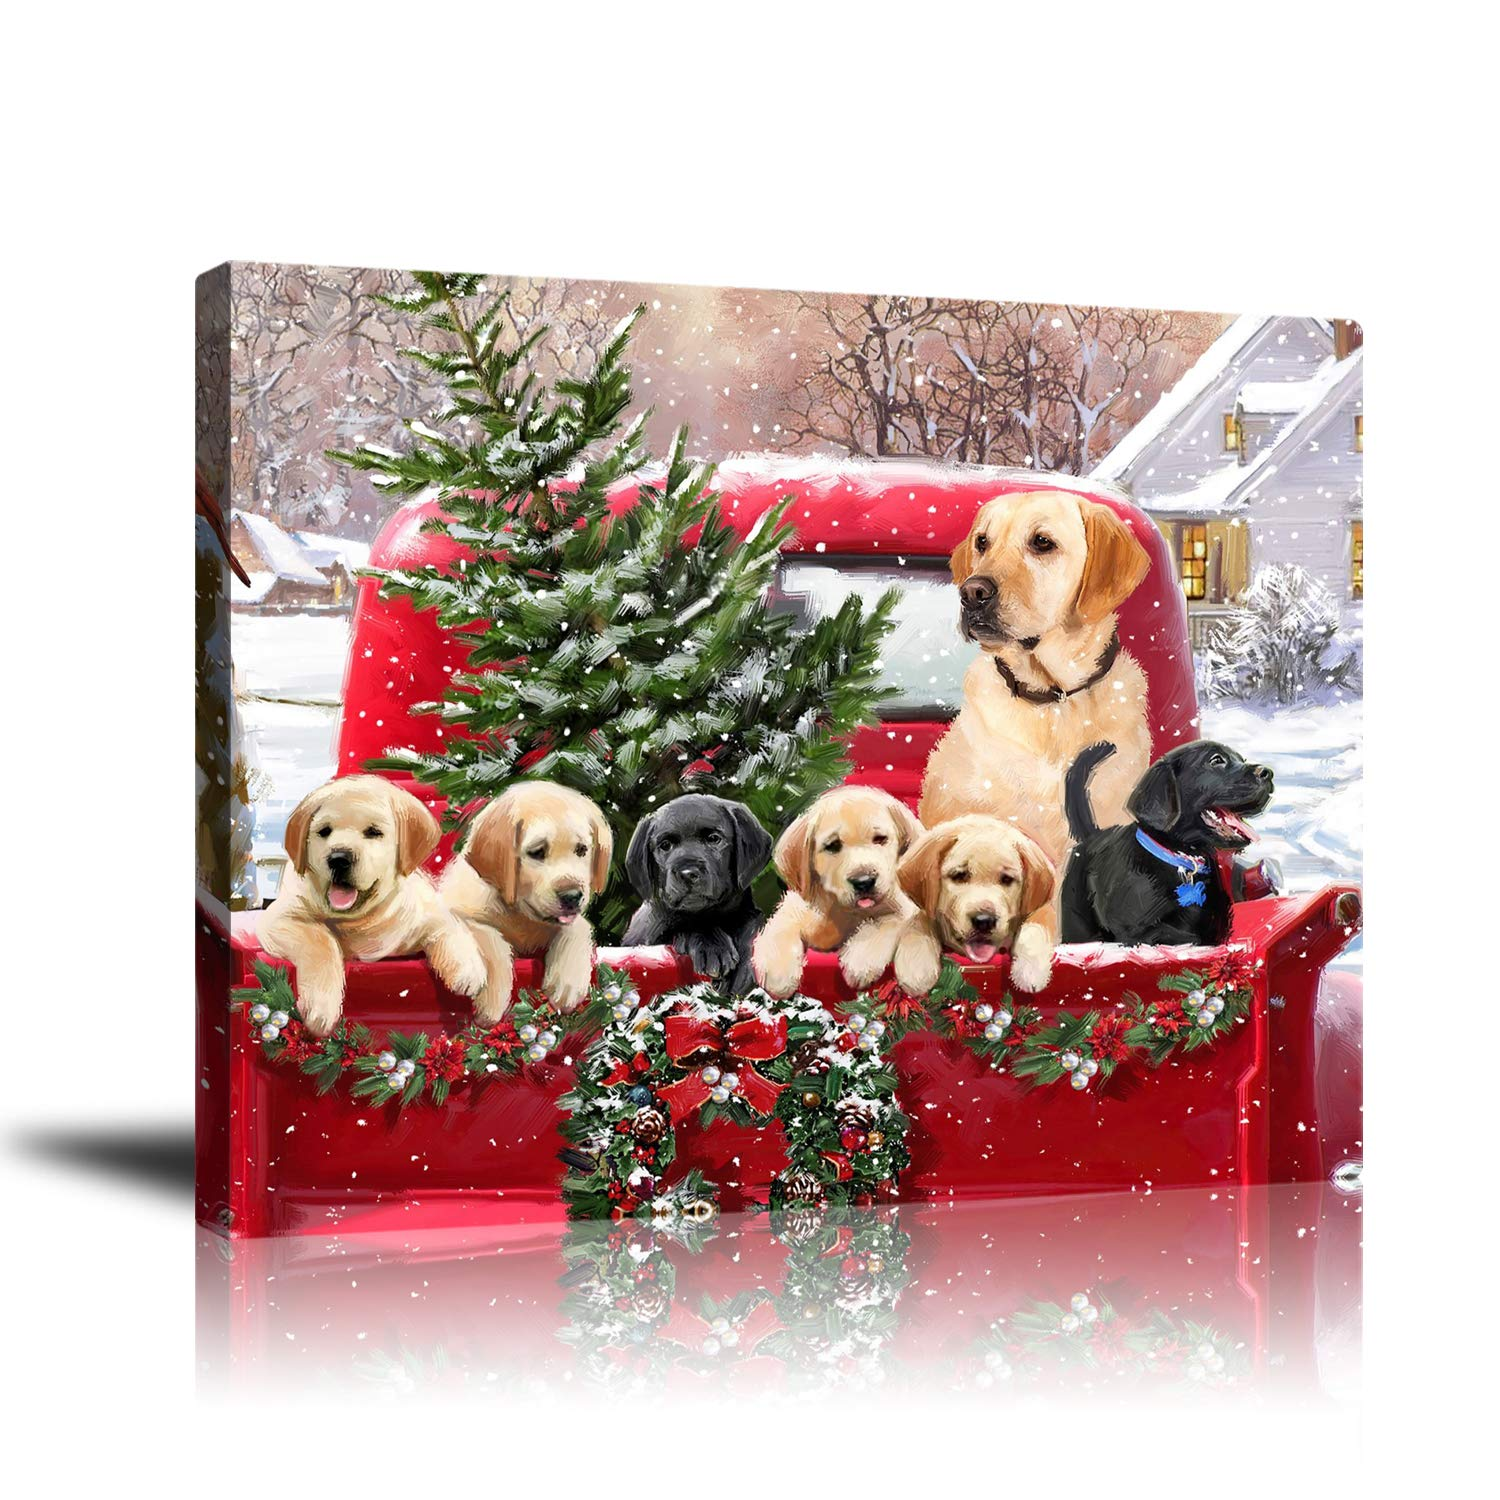 Wall decor Modern Canvas Wall Art, Printed, Dogs on Red Truck Picture Artwork, for Living Room Bedroom Home Office Decor, Ready to Hang 16x20inch